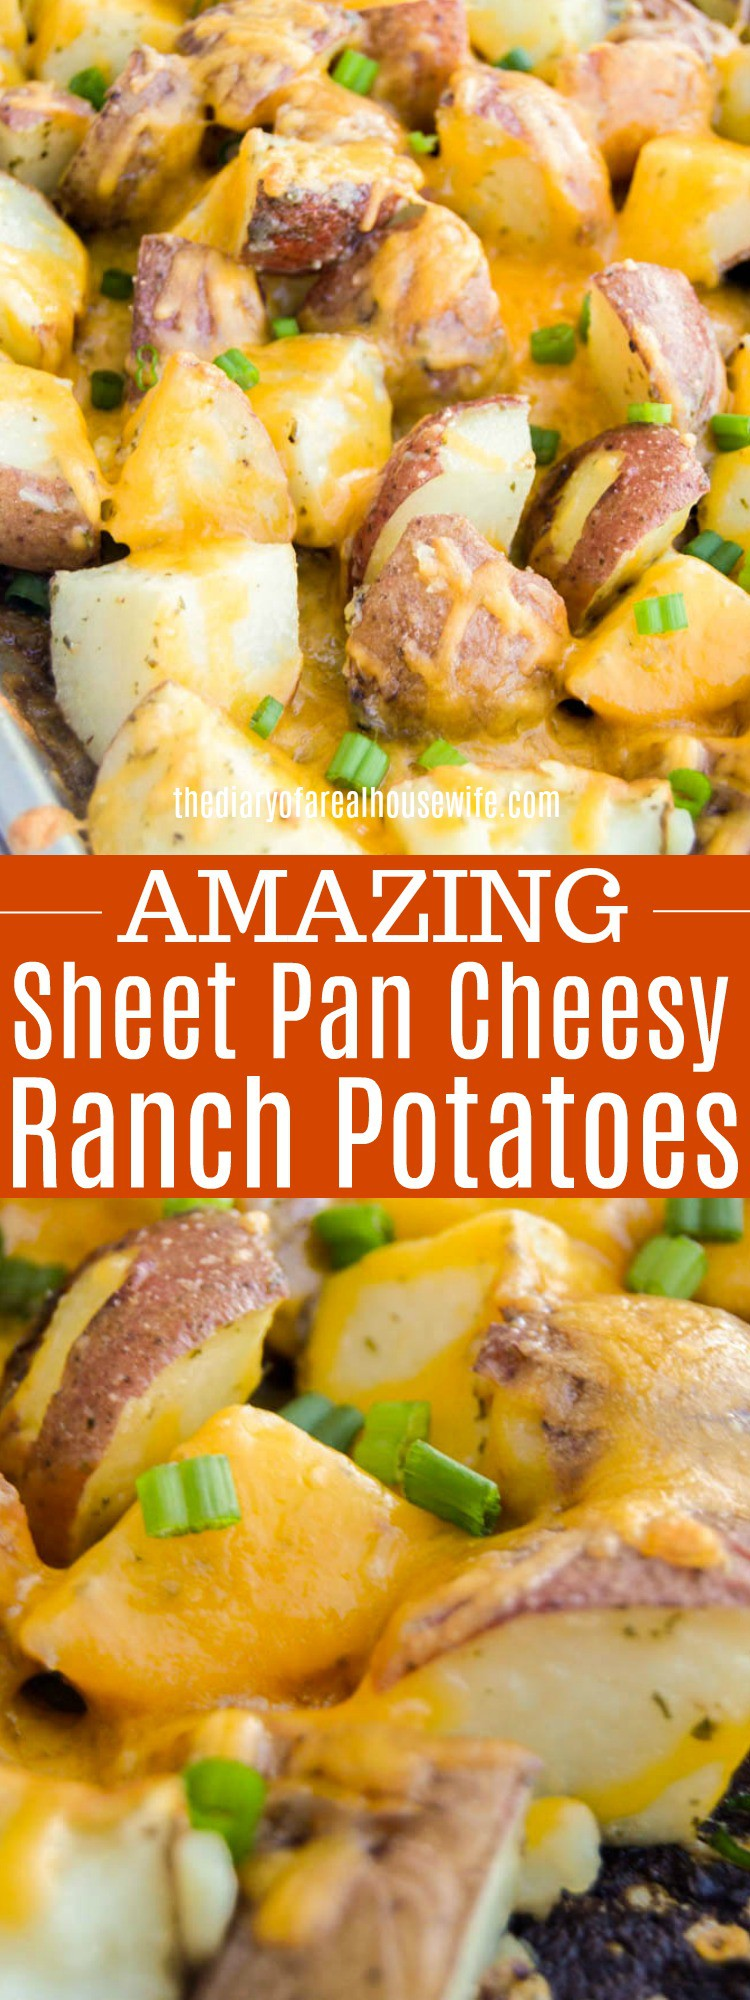 Sheet Pan Cheesy Ranch Potatoes